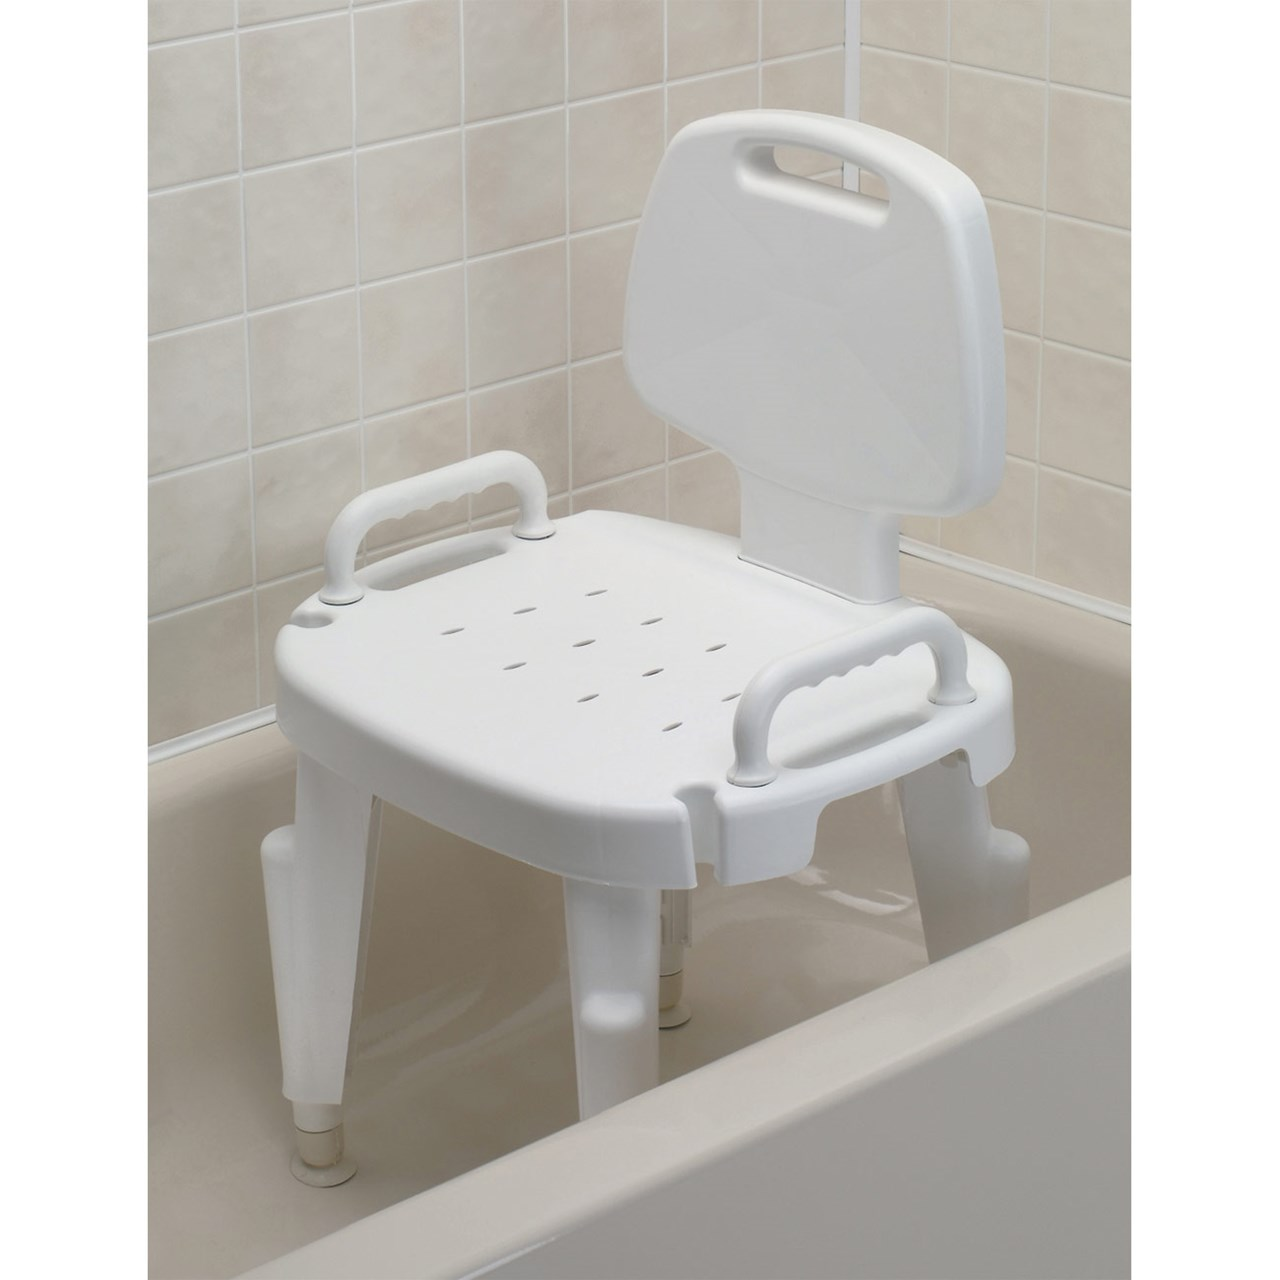 Handicap Bath Chair Maxiaids Adjustable Shower Seat With Arms And Back